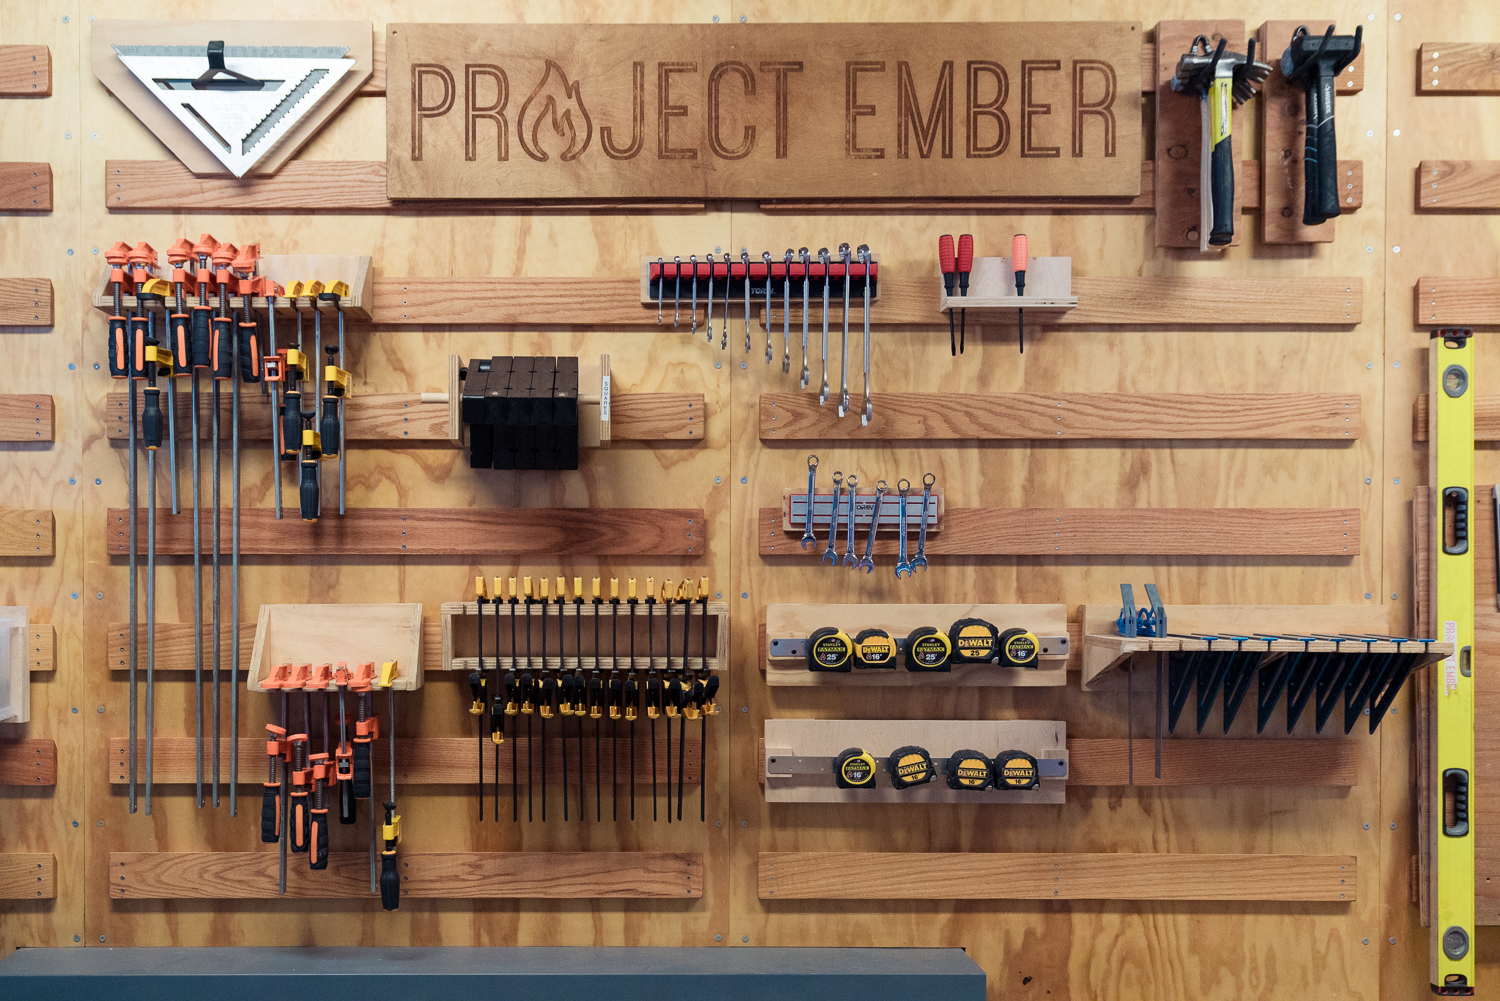 The organized tool shed wall at Project Ember.